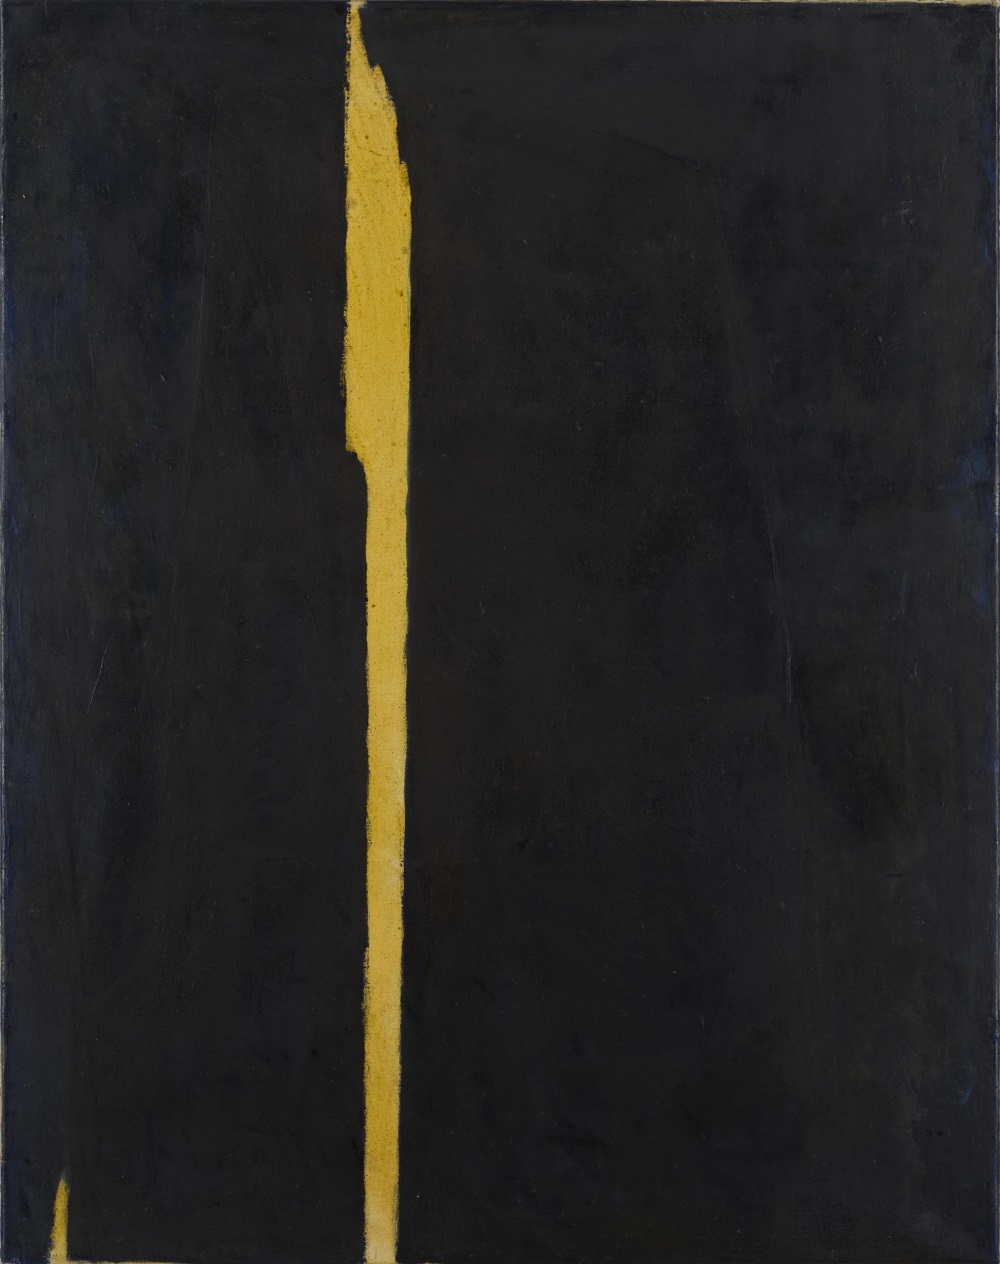 Clyfford Still, PH-613, 1942.